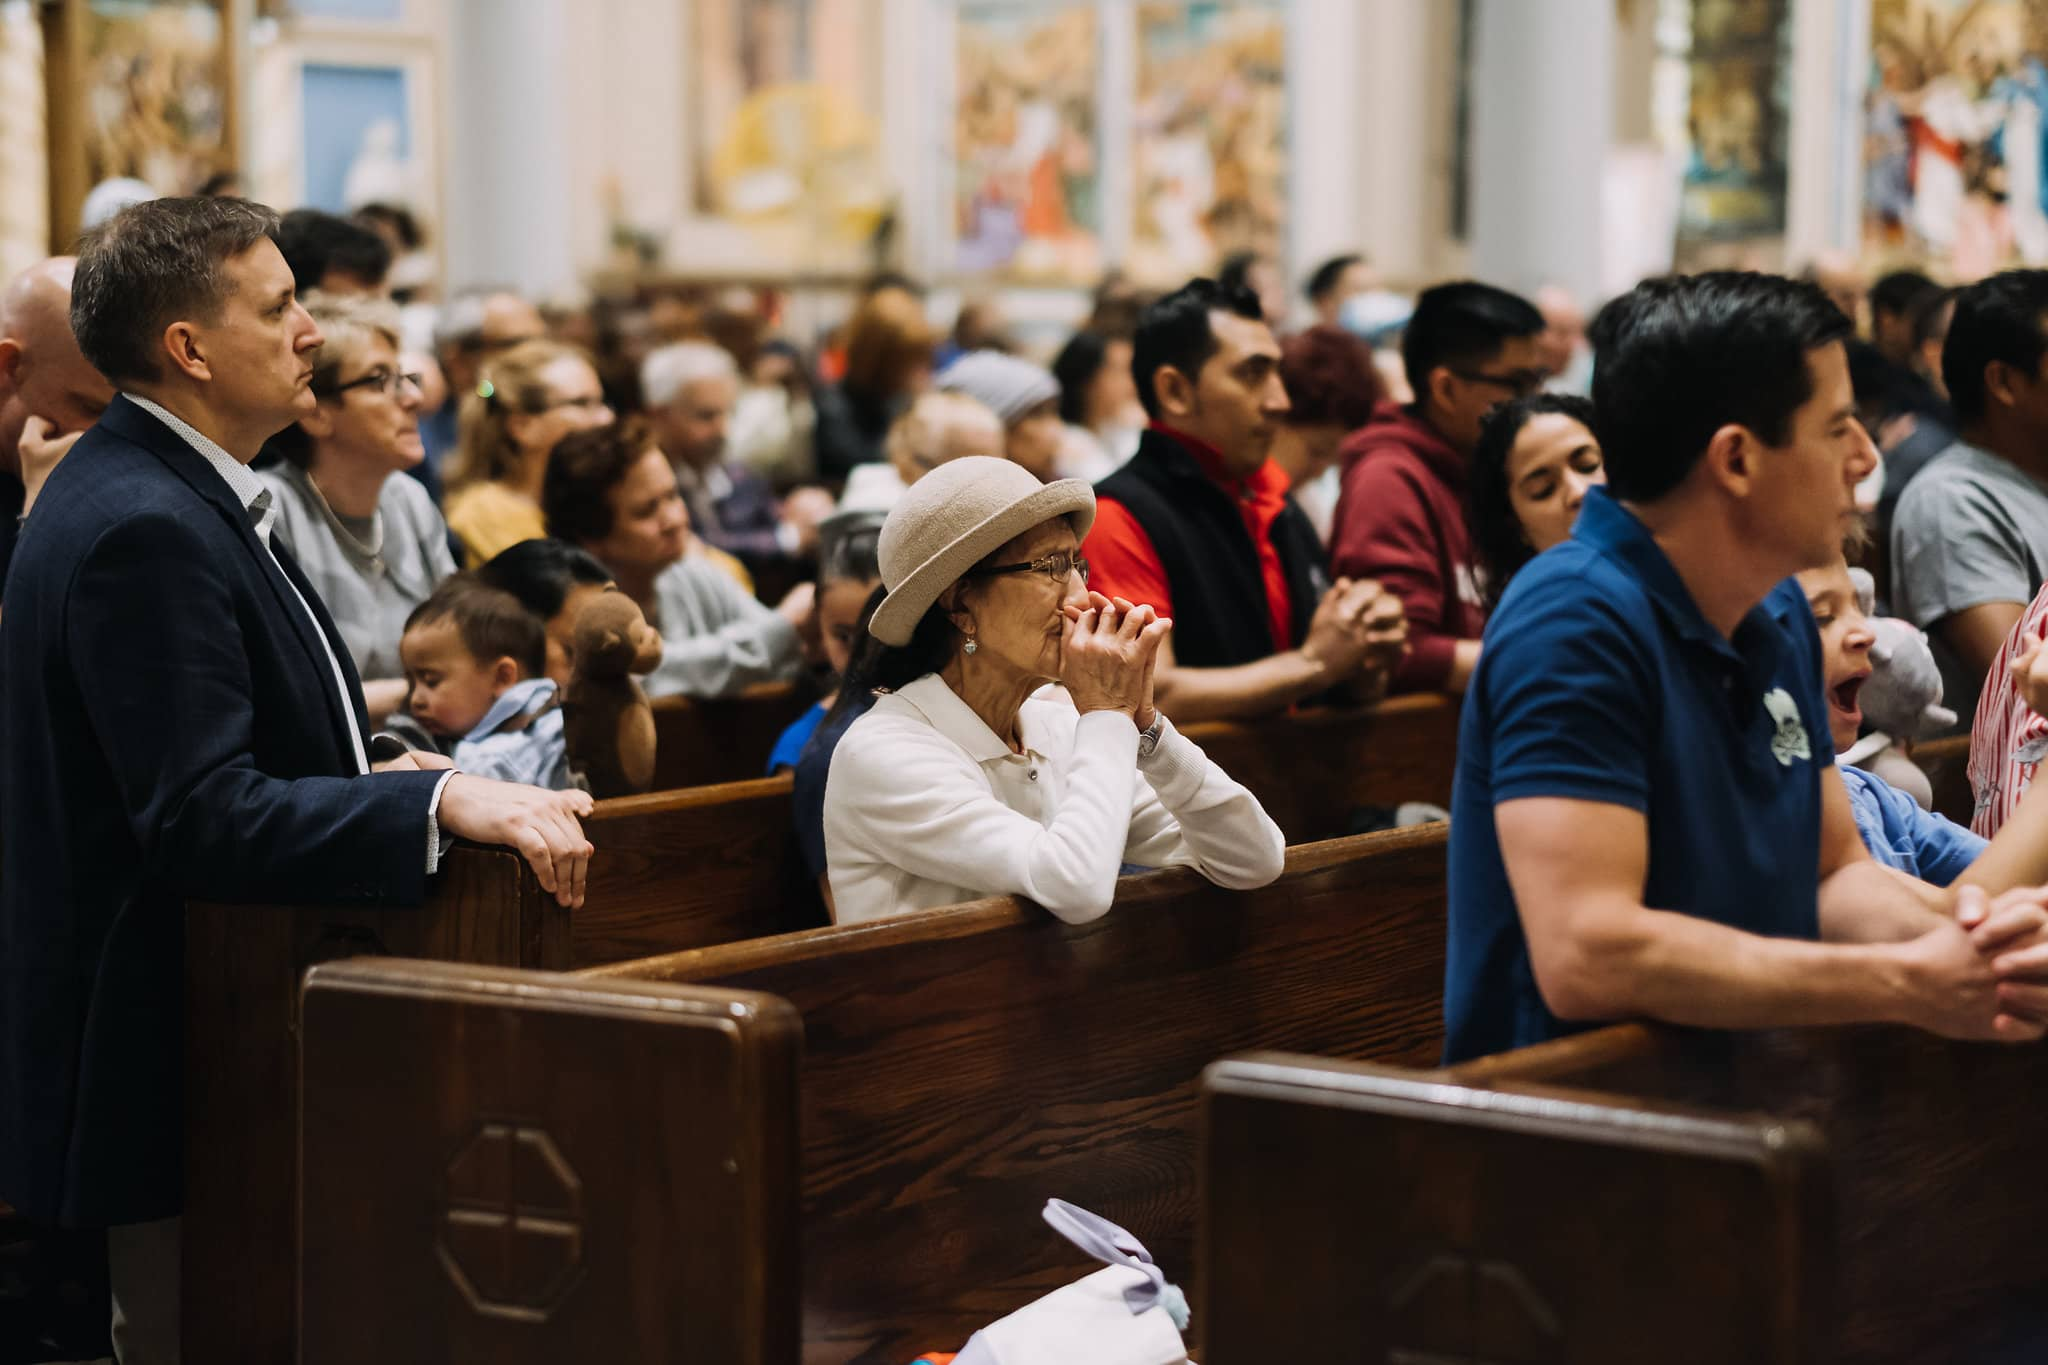 prayer-together-senior-elderly-diverse-mass-st-francis-de-sales-church-new-york-city.jpg